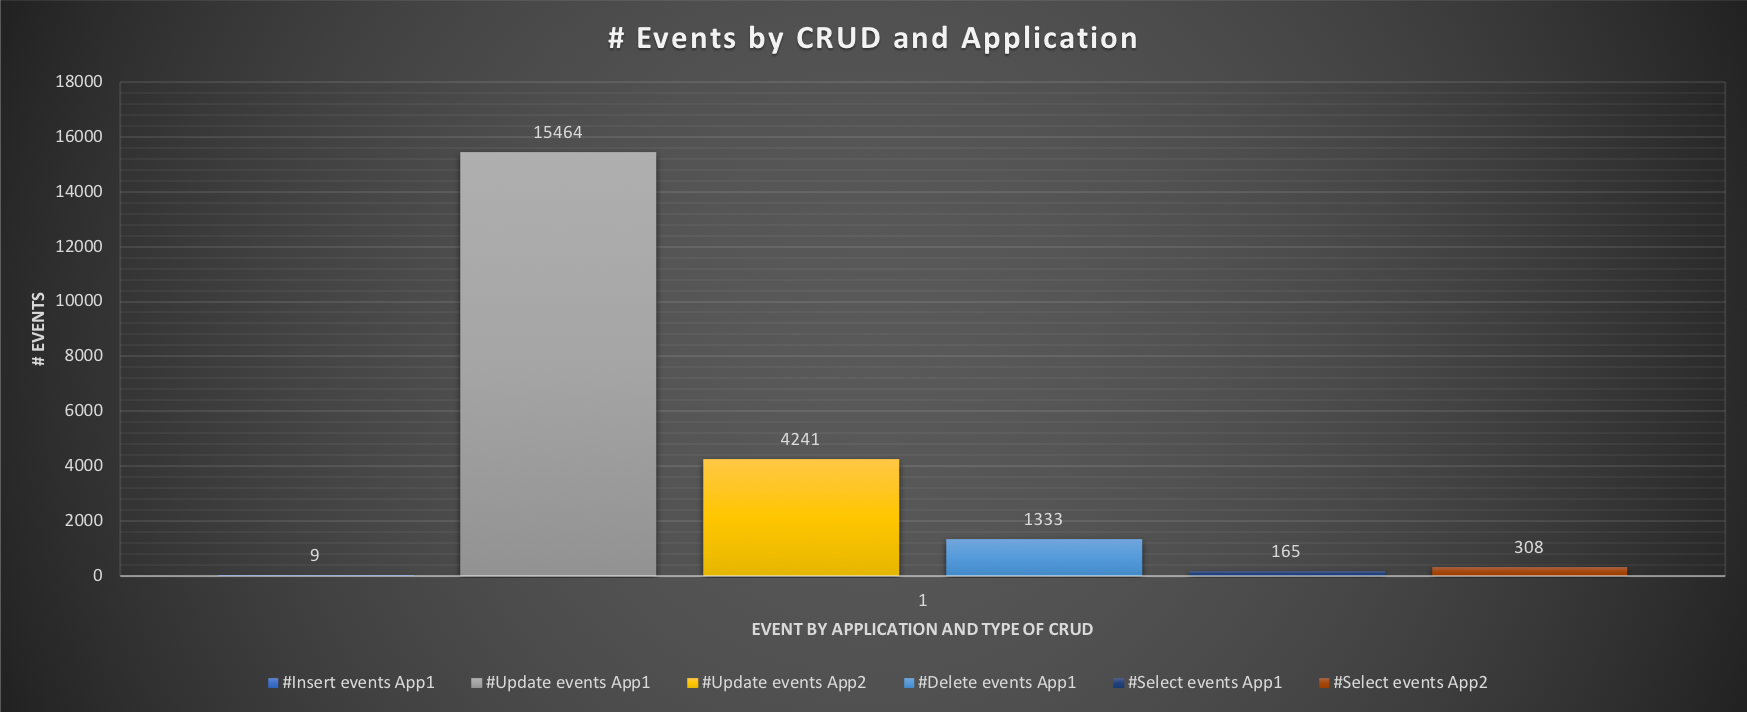 events_by_crud1